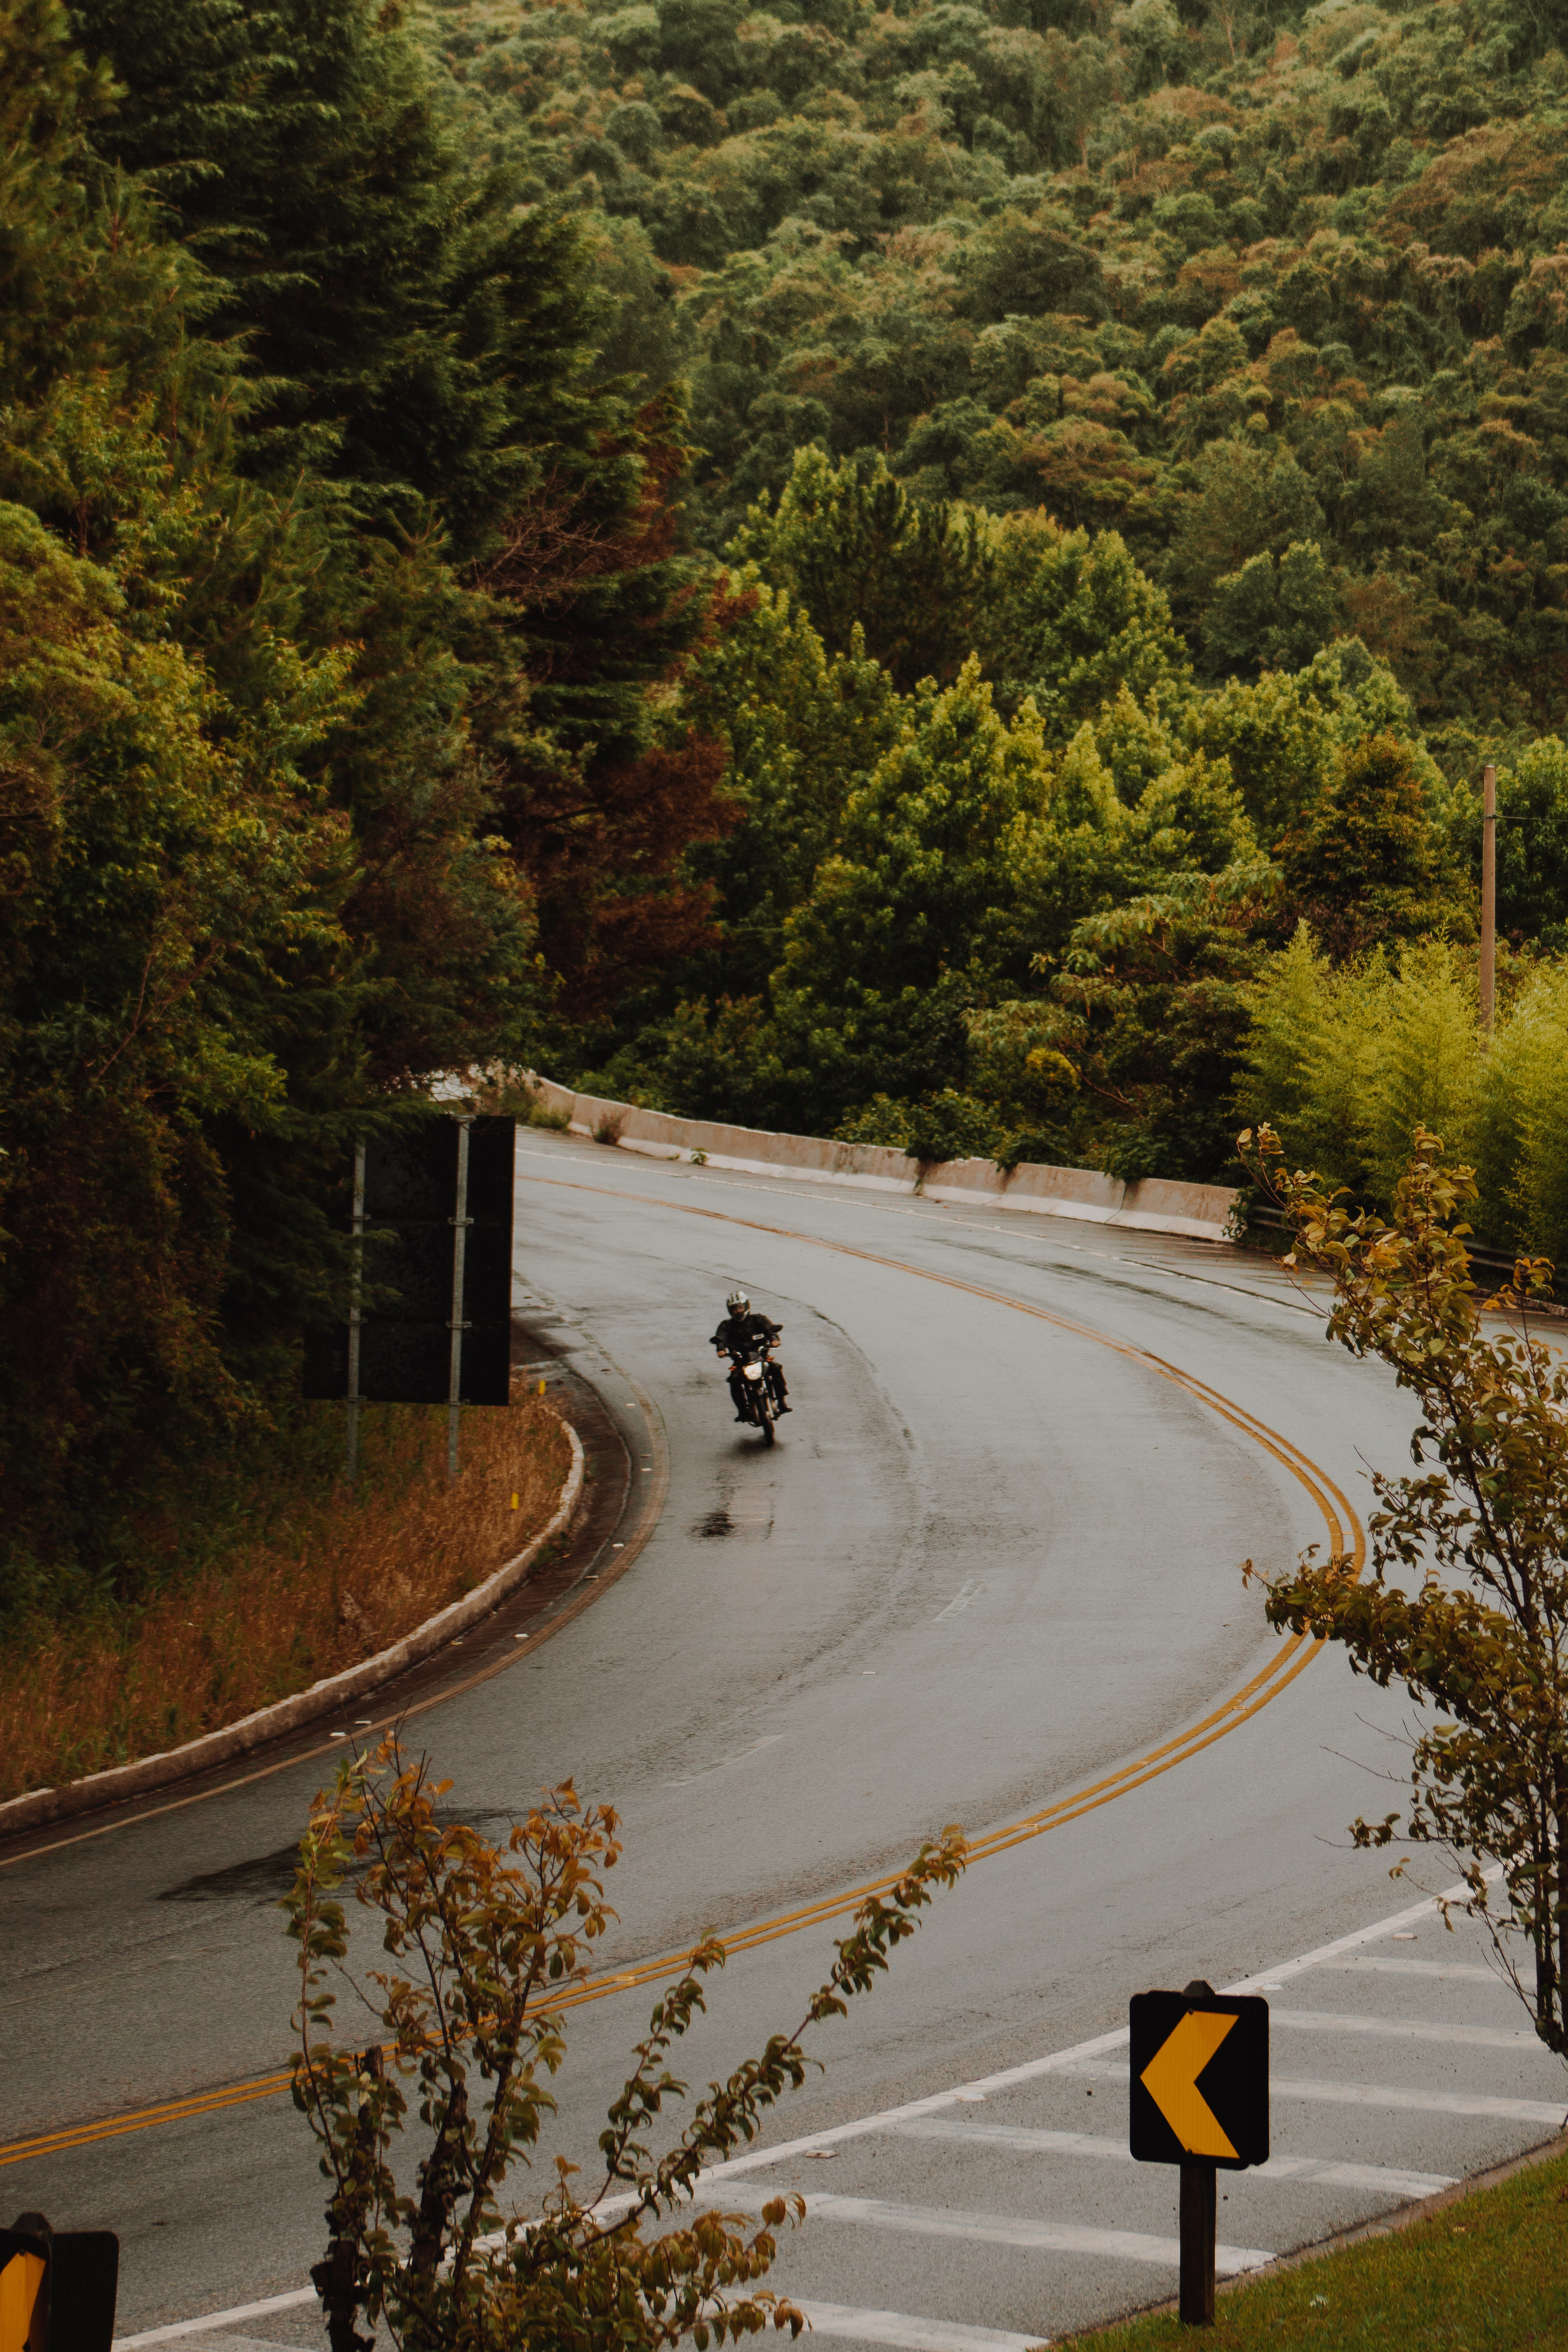 Man riding motorcycle on road photo